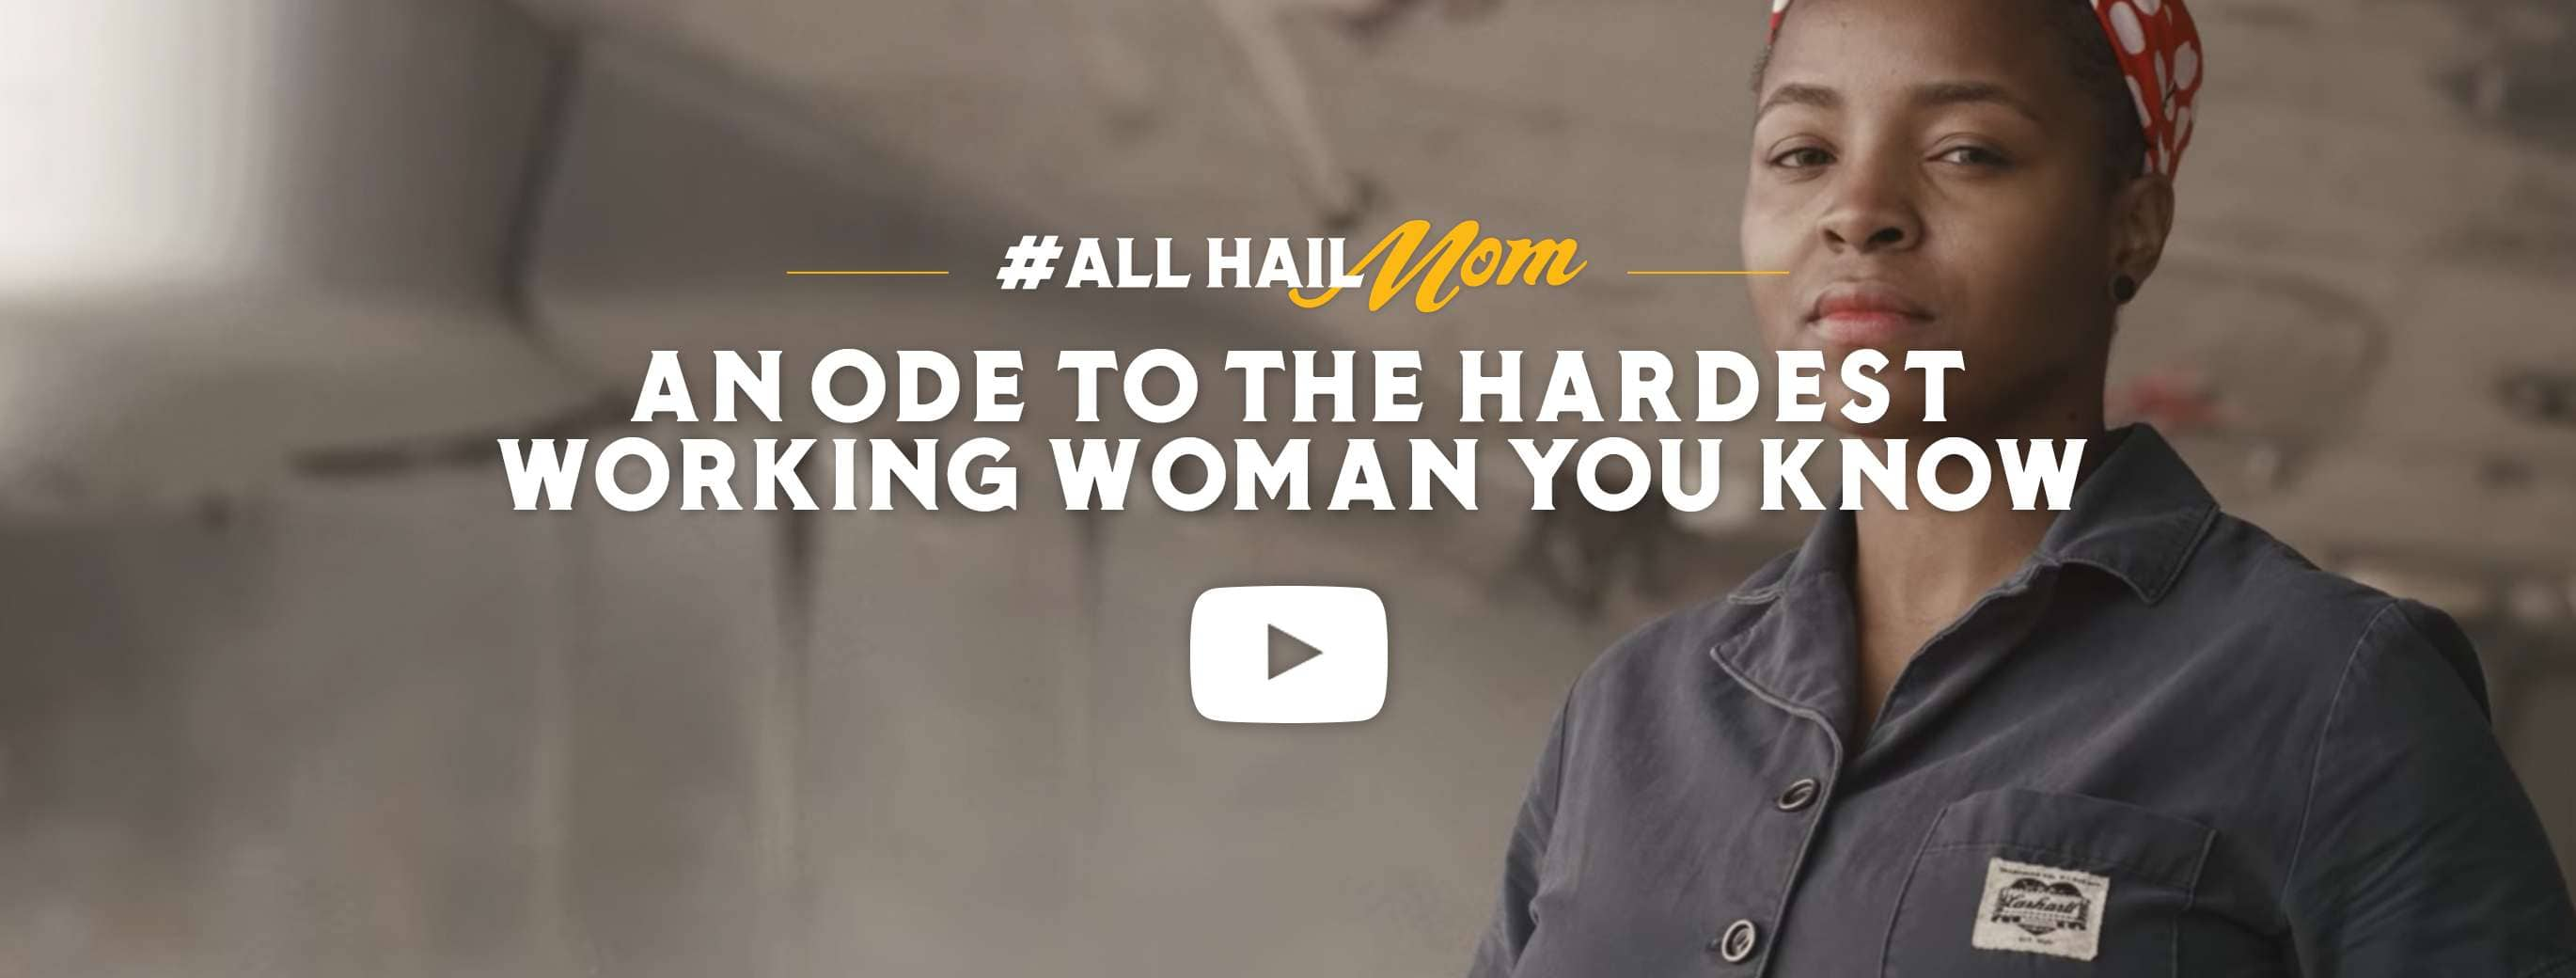 AllHailMom, An ode to the hardest working woman you know